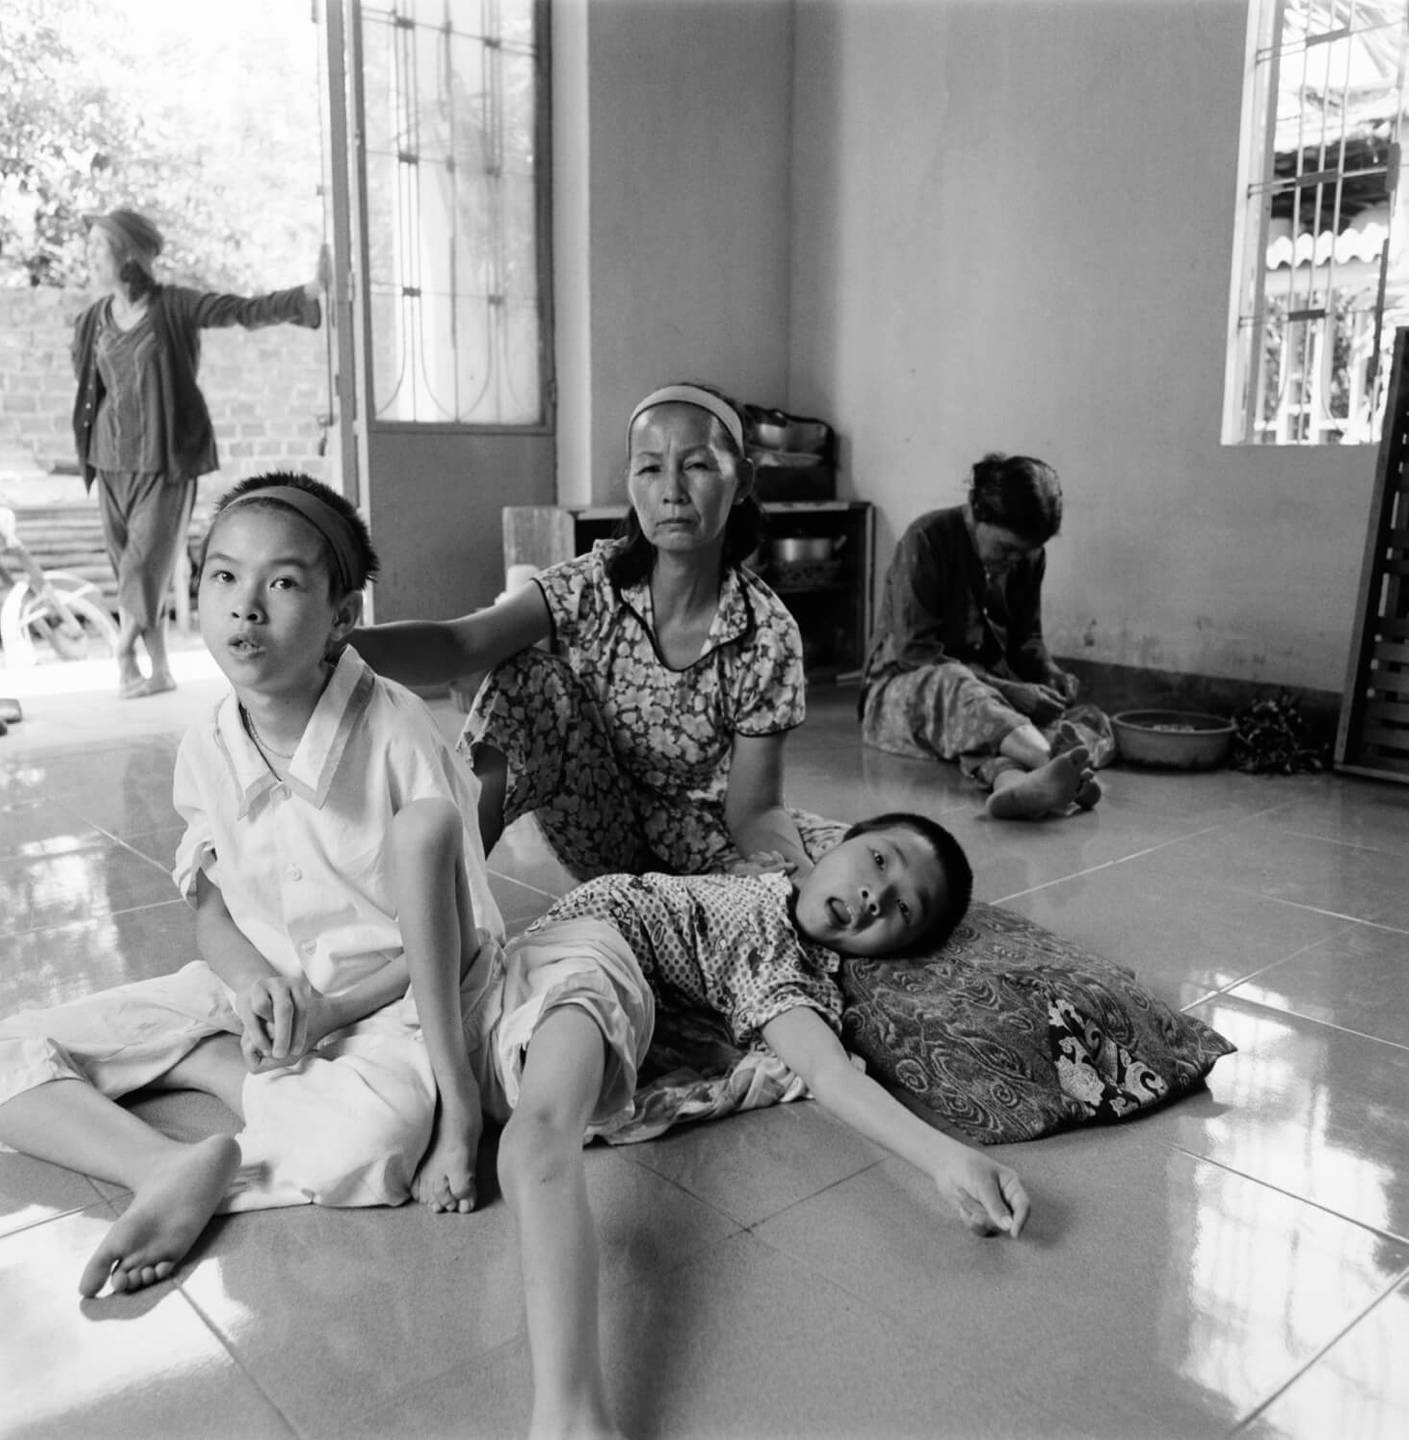 Asian family sitting on a tile floor. One child lays and his body is contorted.